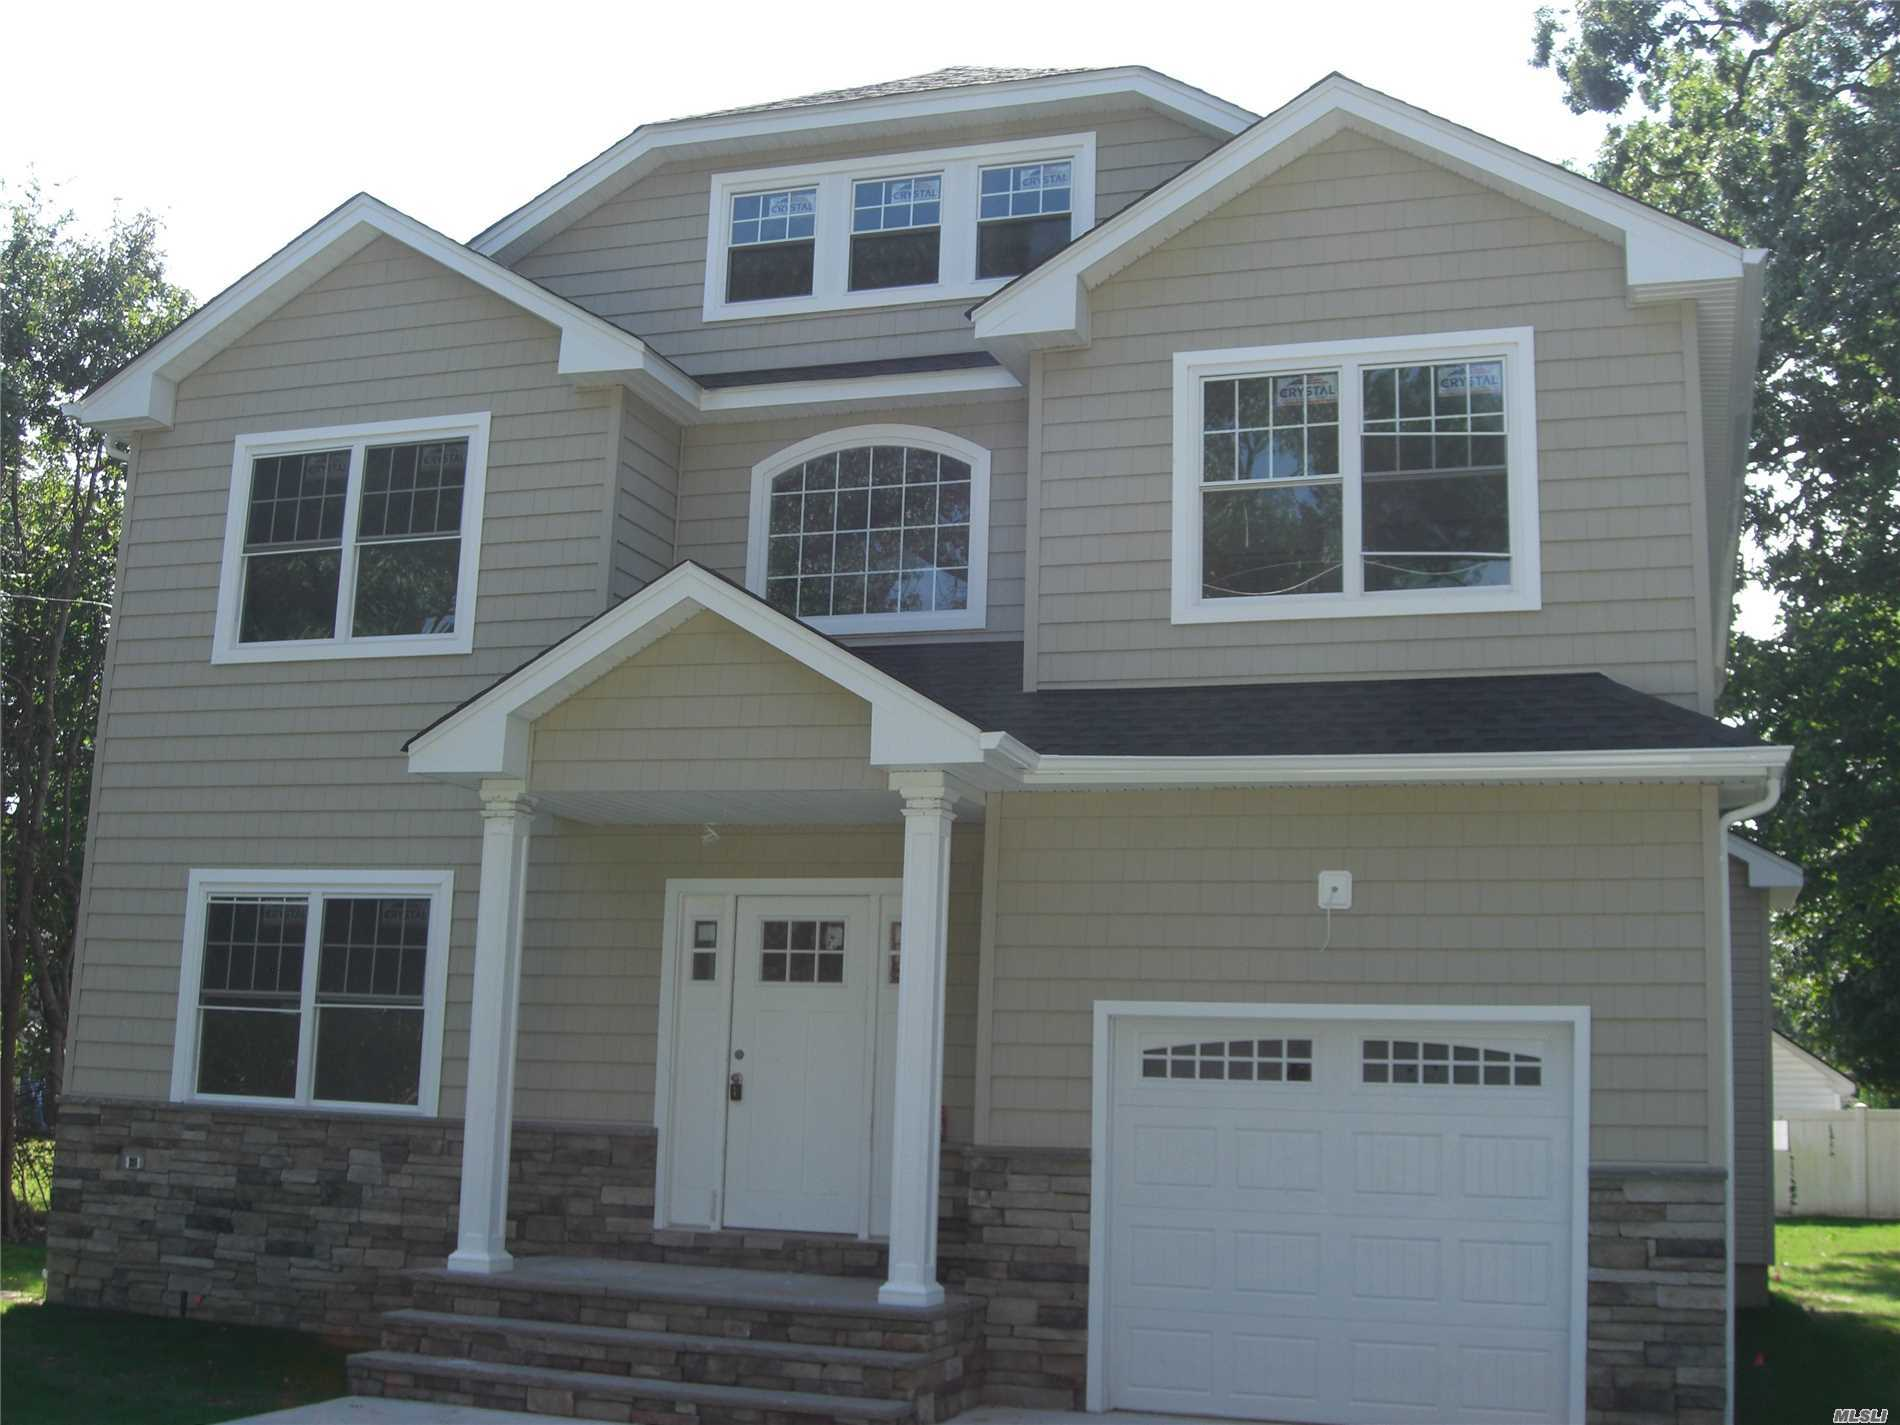 {New Construction}, 4 Huge Bedroom Colonial Including A Huge Master Suite, 2.5 Full Bath, Eat In Kitchen With Center Island, Quartz Counter Tops, Stainless Steel Appliances, Porcelain Tiles, Formal Living Room, Formal Dining Room And Family Room With State Of The Art Gleaming Hardwood Floors Through Out, Central Air Condition System, Gas Burning Fire Place, Laundry Room, Full Unfinished Basement With High Ceiling, Ose, 1 Car Attached Garage, Over Sized Yard With In Ground Automatic Sprinklers .